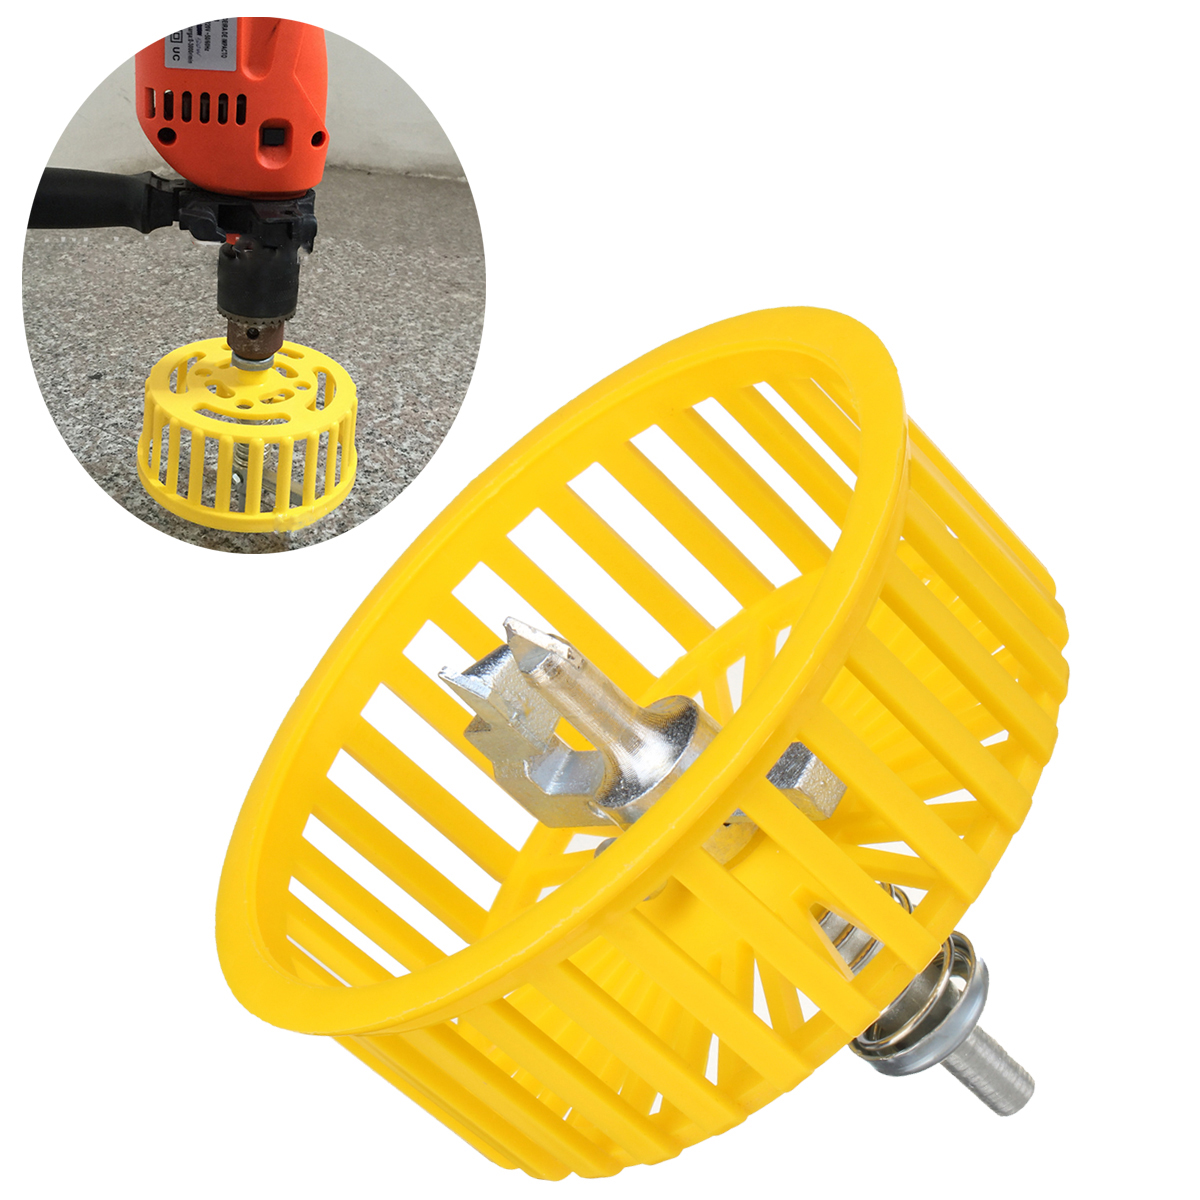 20-100mm Adjustable Tile Hole Opener Carbide Hole Saw Cutter With Cover